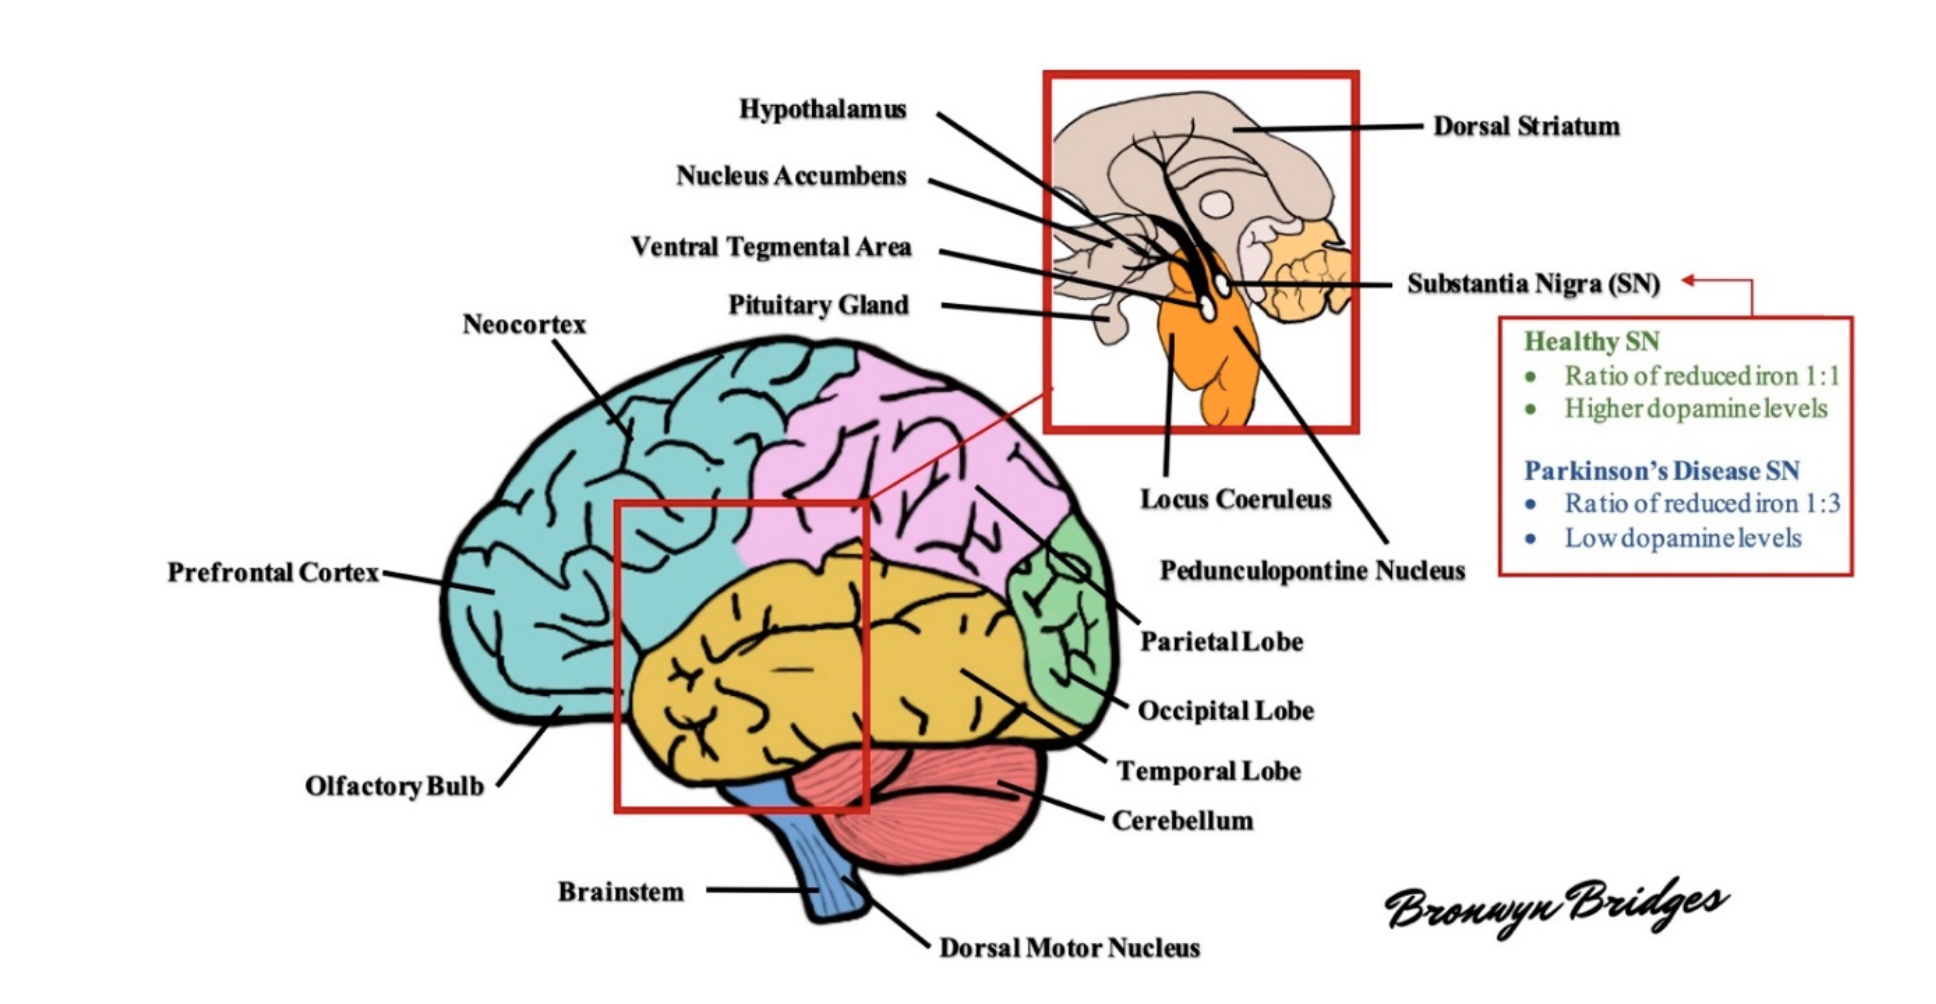 Figure 1. Schematic diagram of the human brain. Several areas of the brain are adversely affected in Parkinson's disease (PD). For example, the substantia nigra exhibits a profound loss of dopaminergic Figure 1. Schematic diagram of the human brain. Several areas of the brain are adversely affected in neurons and altered levels of reduced iron, likely as a result of increased oxidative stress. As the disease Parkinson's disease (PD). For example, the substantia nigra exhibits a profound loss of dopaminergic progresses, other areas of the brain develop lesions, including the dorsal motor nucleus, neocortex, neurons and altered levels of reduced iron, likely as a result of increased oxidative stress. As the prefrontal cortex, locus coeruleus, amygdala, and more (see text for further details)